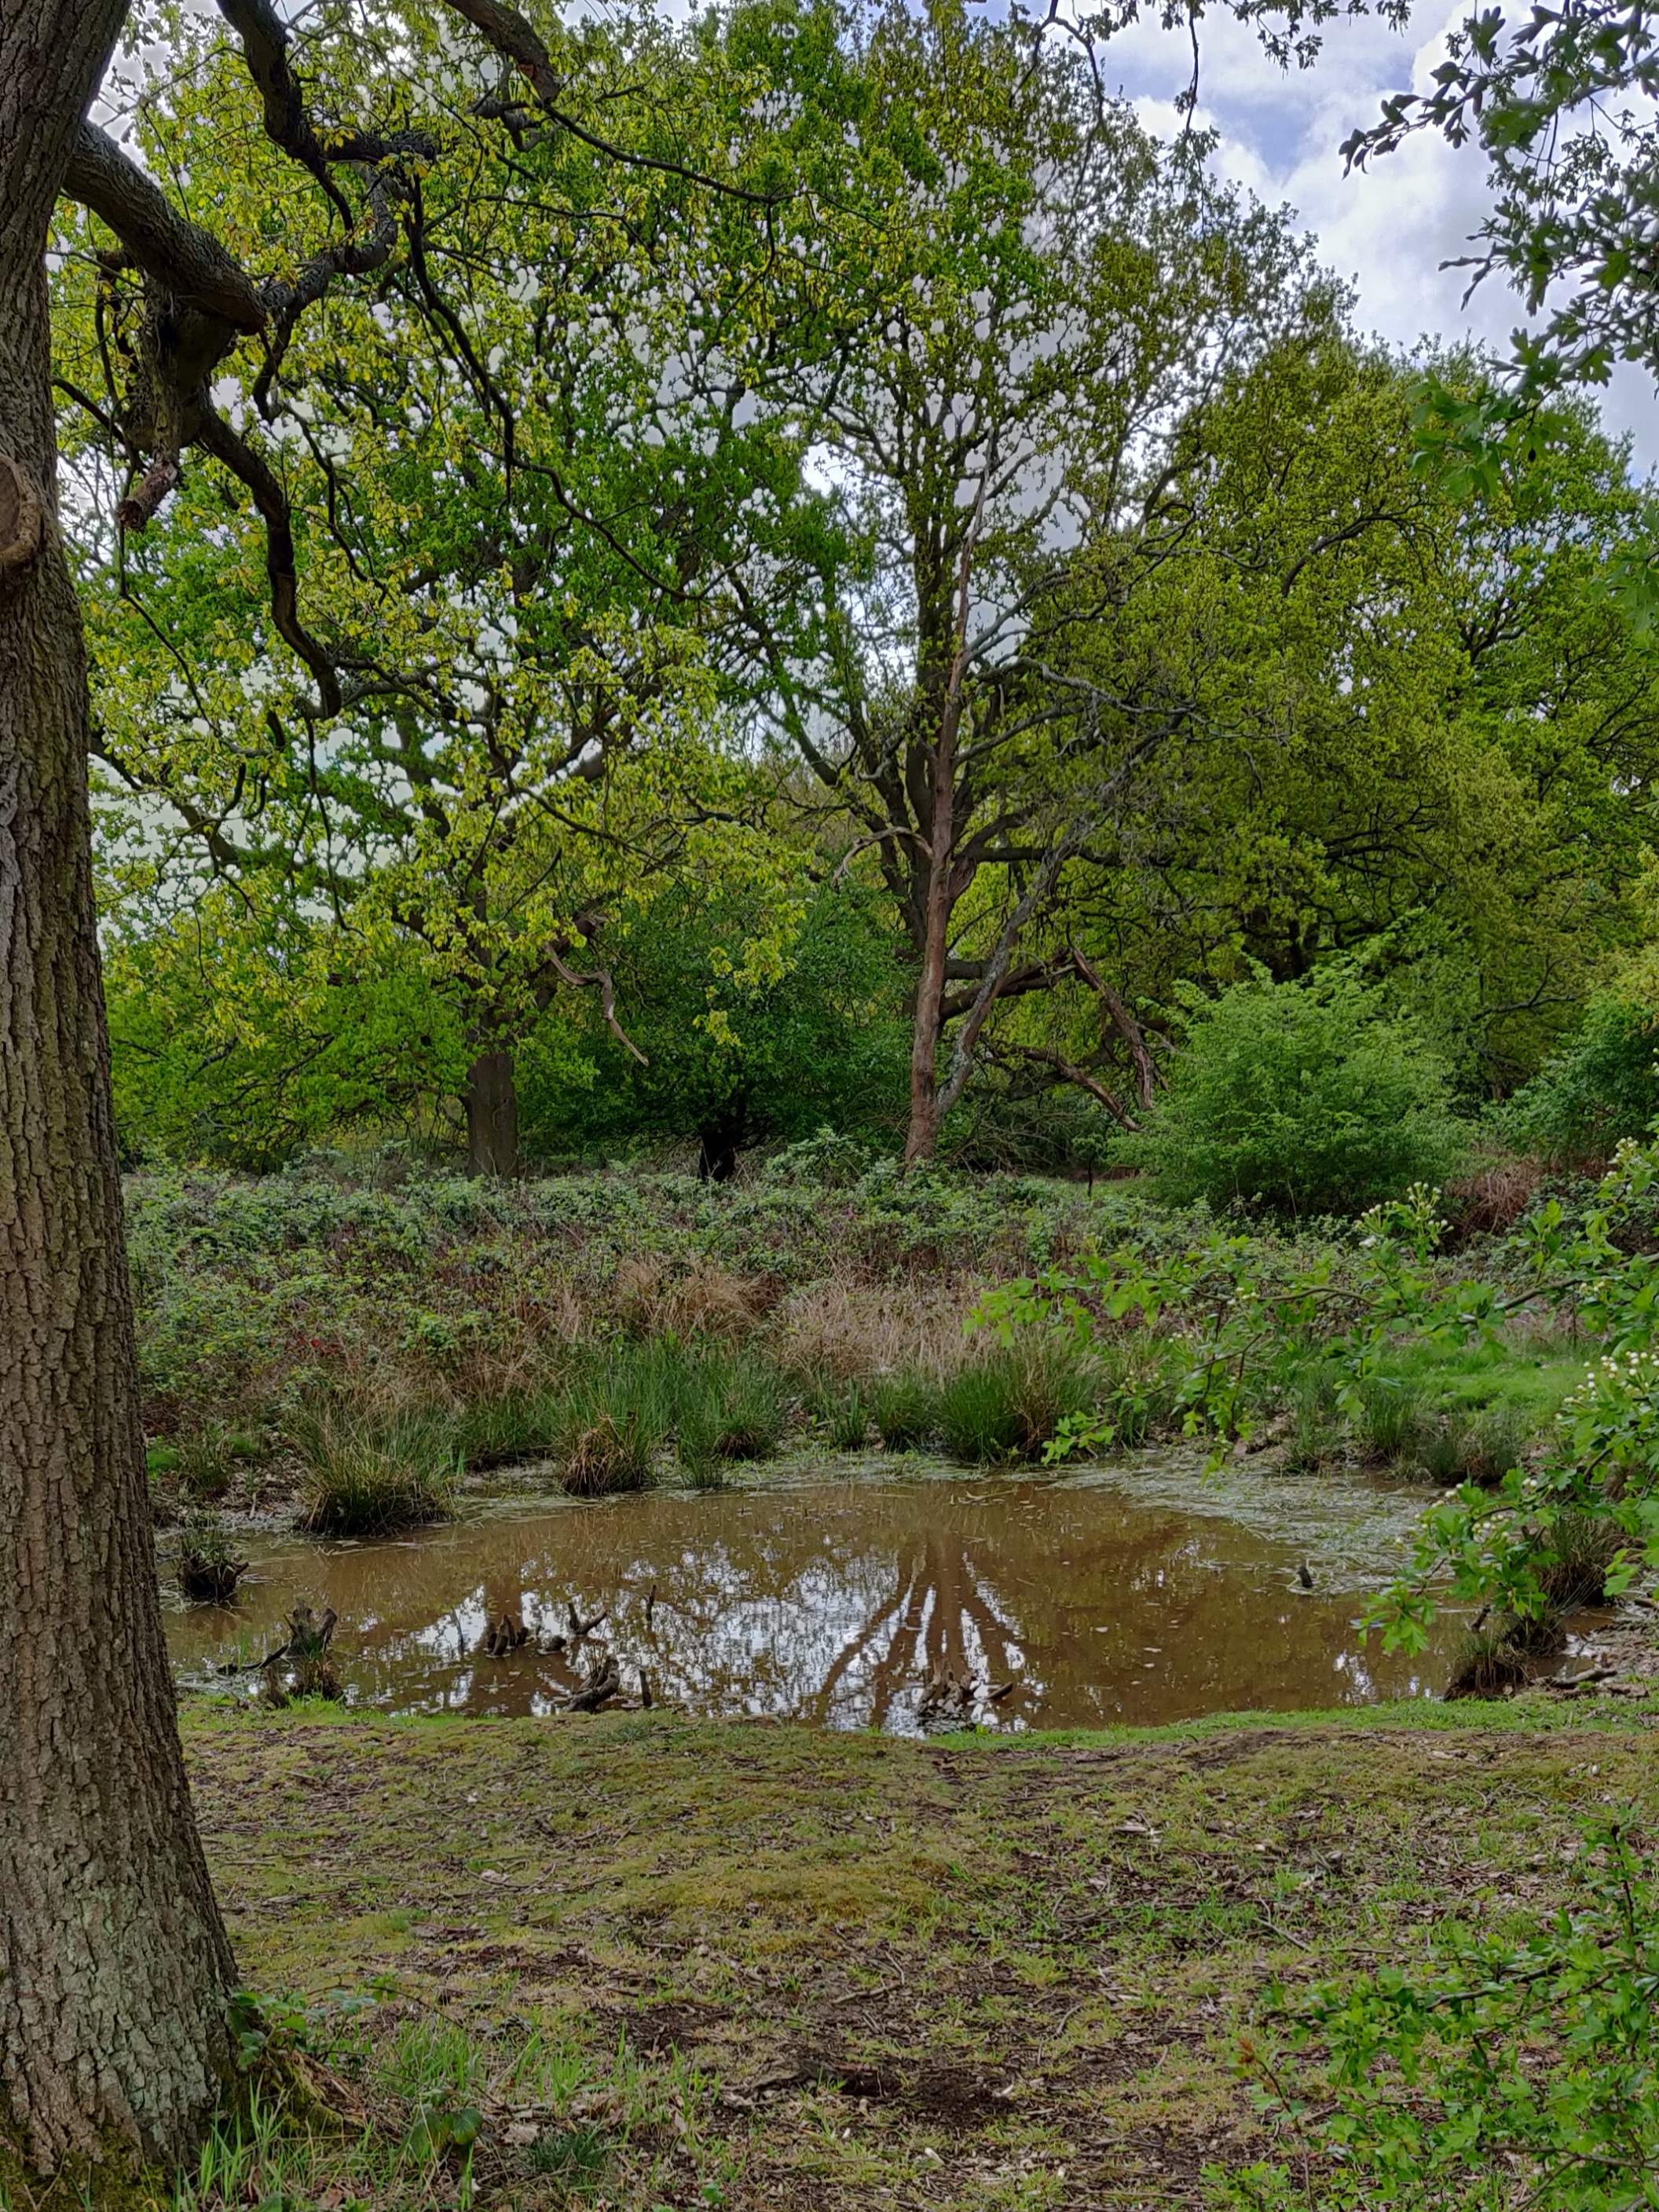 Bomb pond at Fairmead, Epping Forest